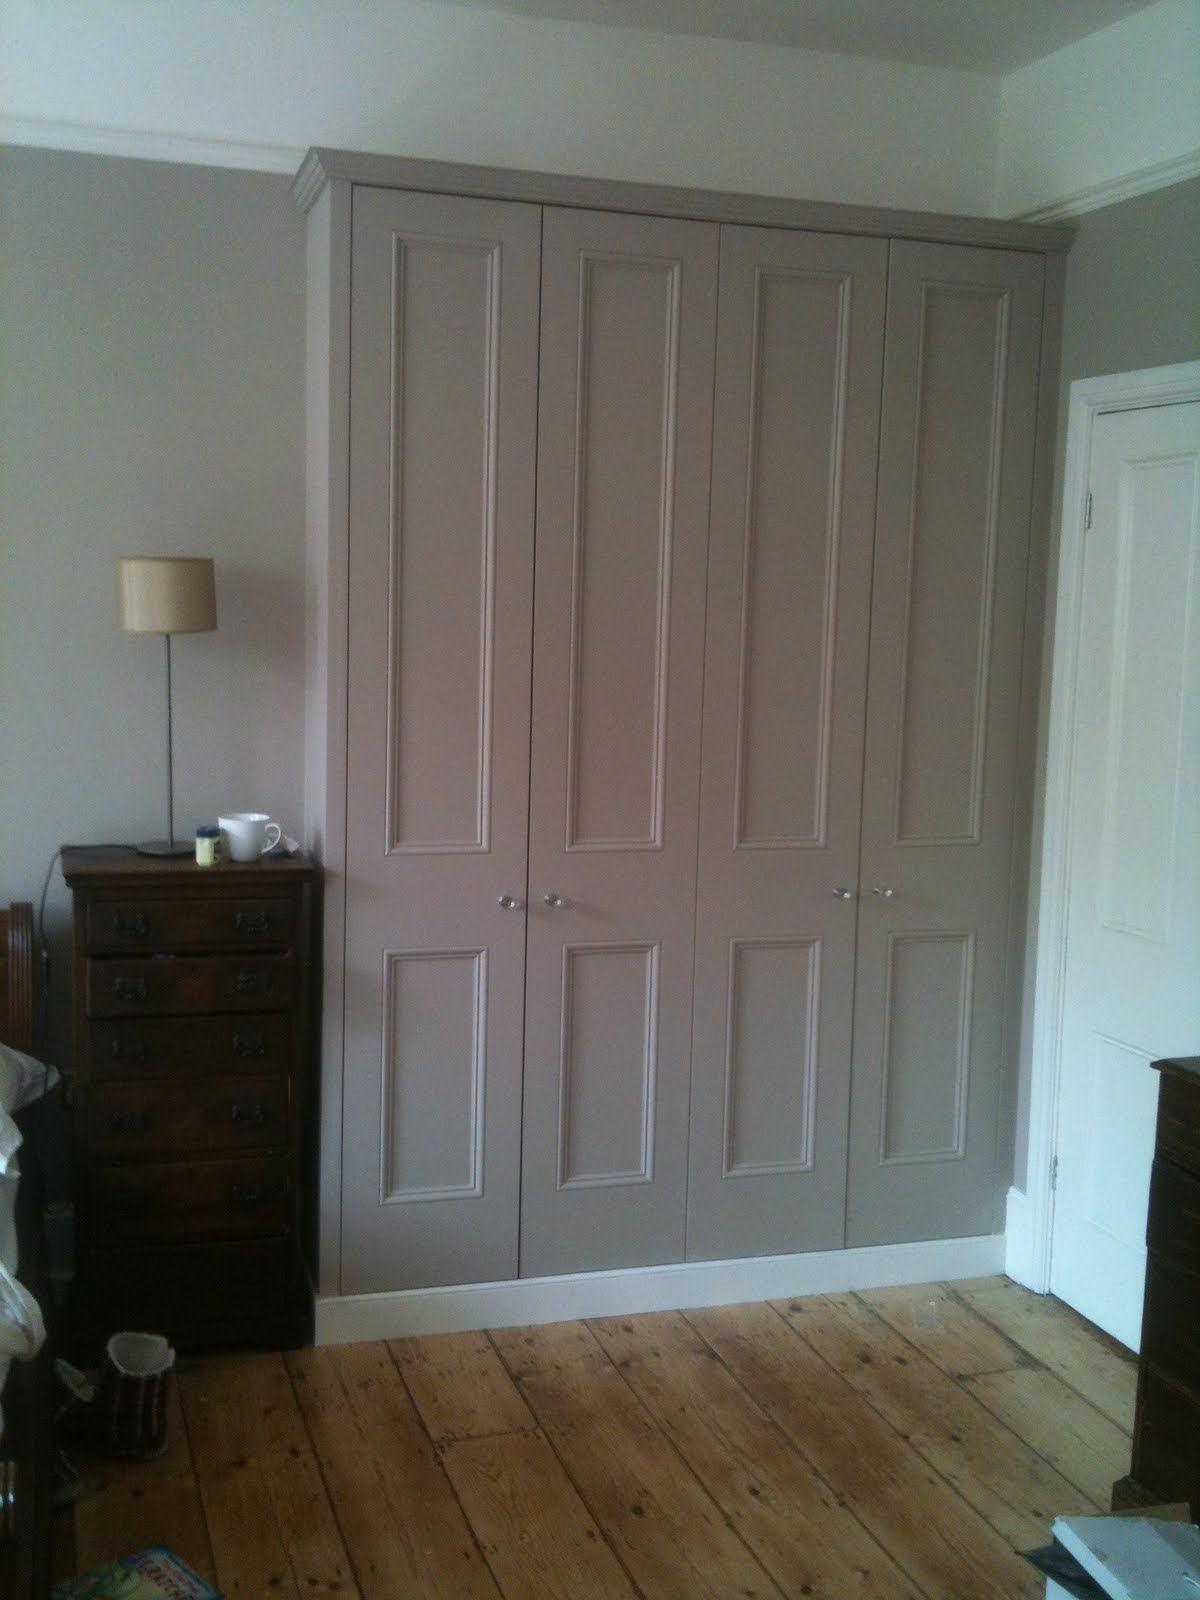 Carpenter in brighton brighton carpenter fitted wardrobes Pictures of built in wardrobes